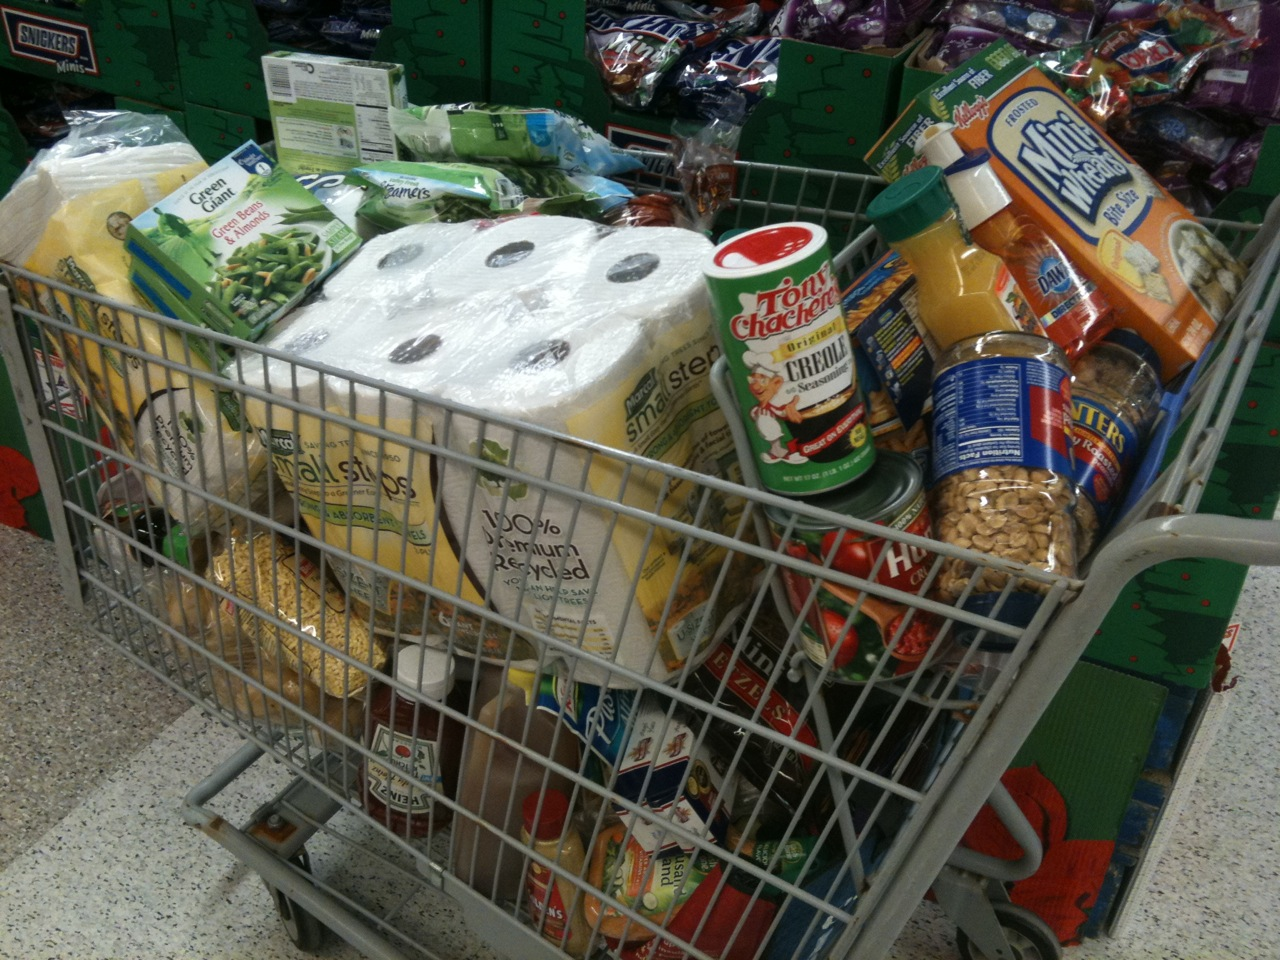 Charity Grocery Cart Could End Up Much Less Than Half Full